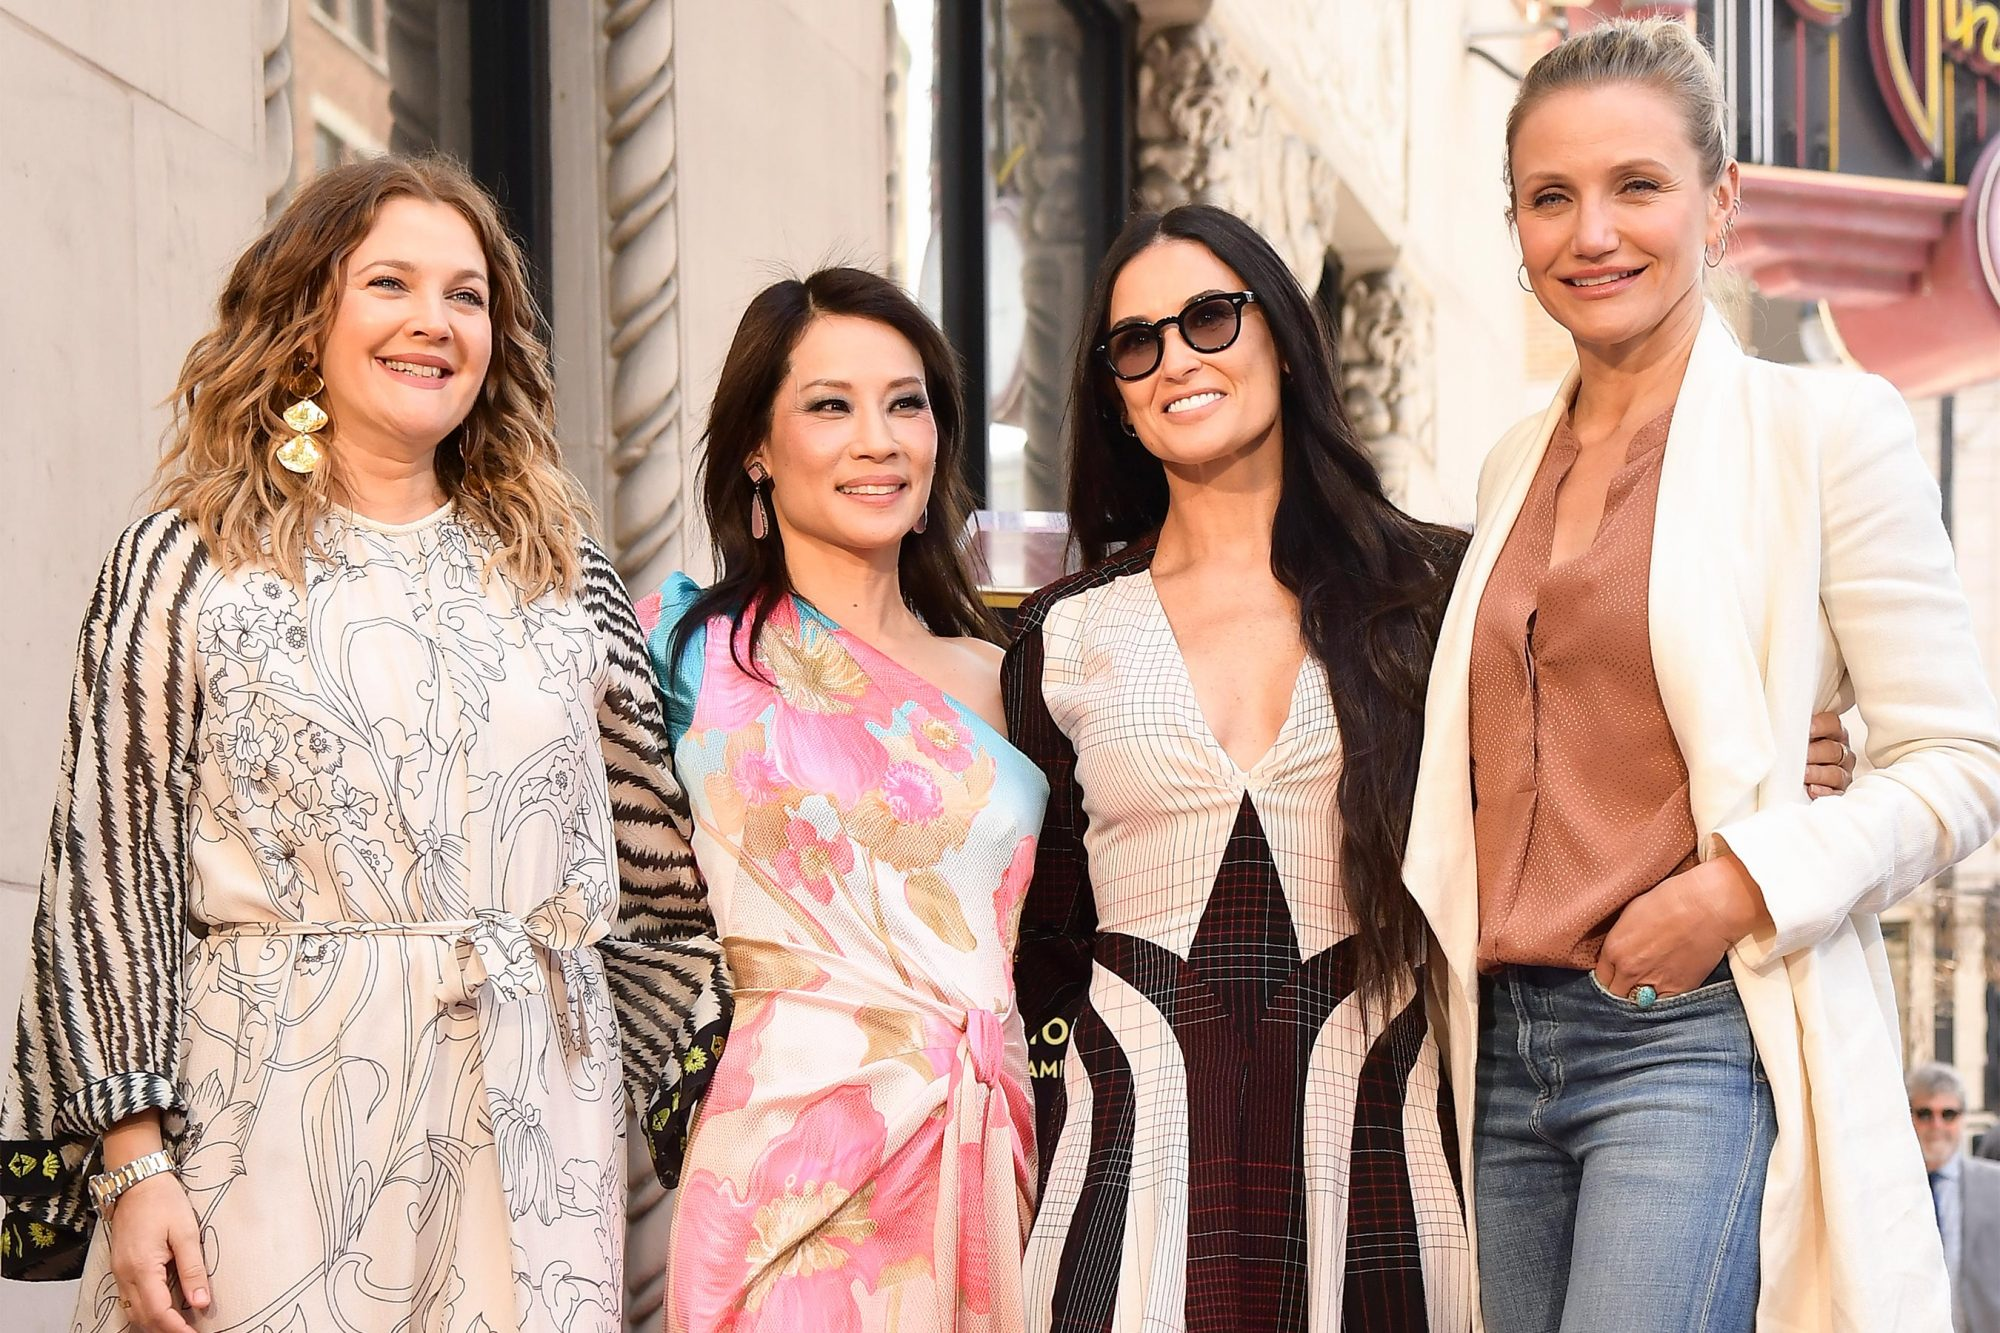 HOLLYWOOD, CALIFORNIA - MAY 01: (L-R) Drew Barrymore, Lucy Liu, Demi Moore and Cameron Diaz attend a ceremony honoring Liu with a star on the Hollywood Walk Of Fame on May 1, 2019 in Hollywood, California. (Photo by Matt Winkelmeyer/Getty Images)